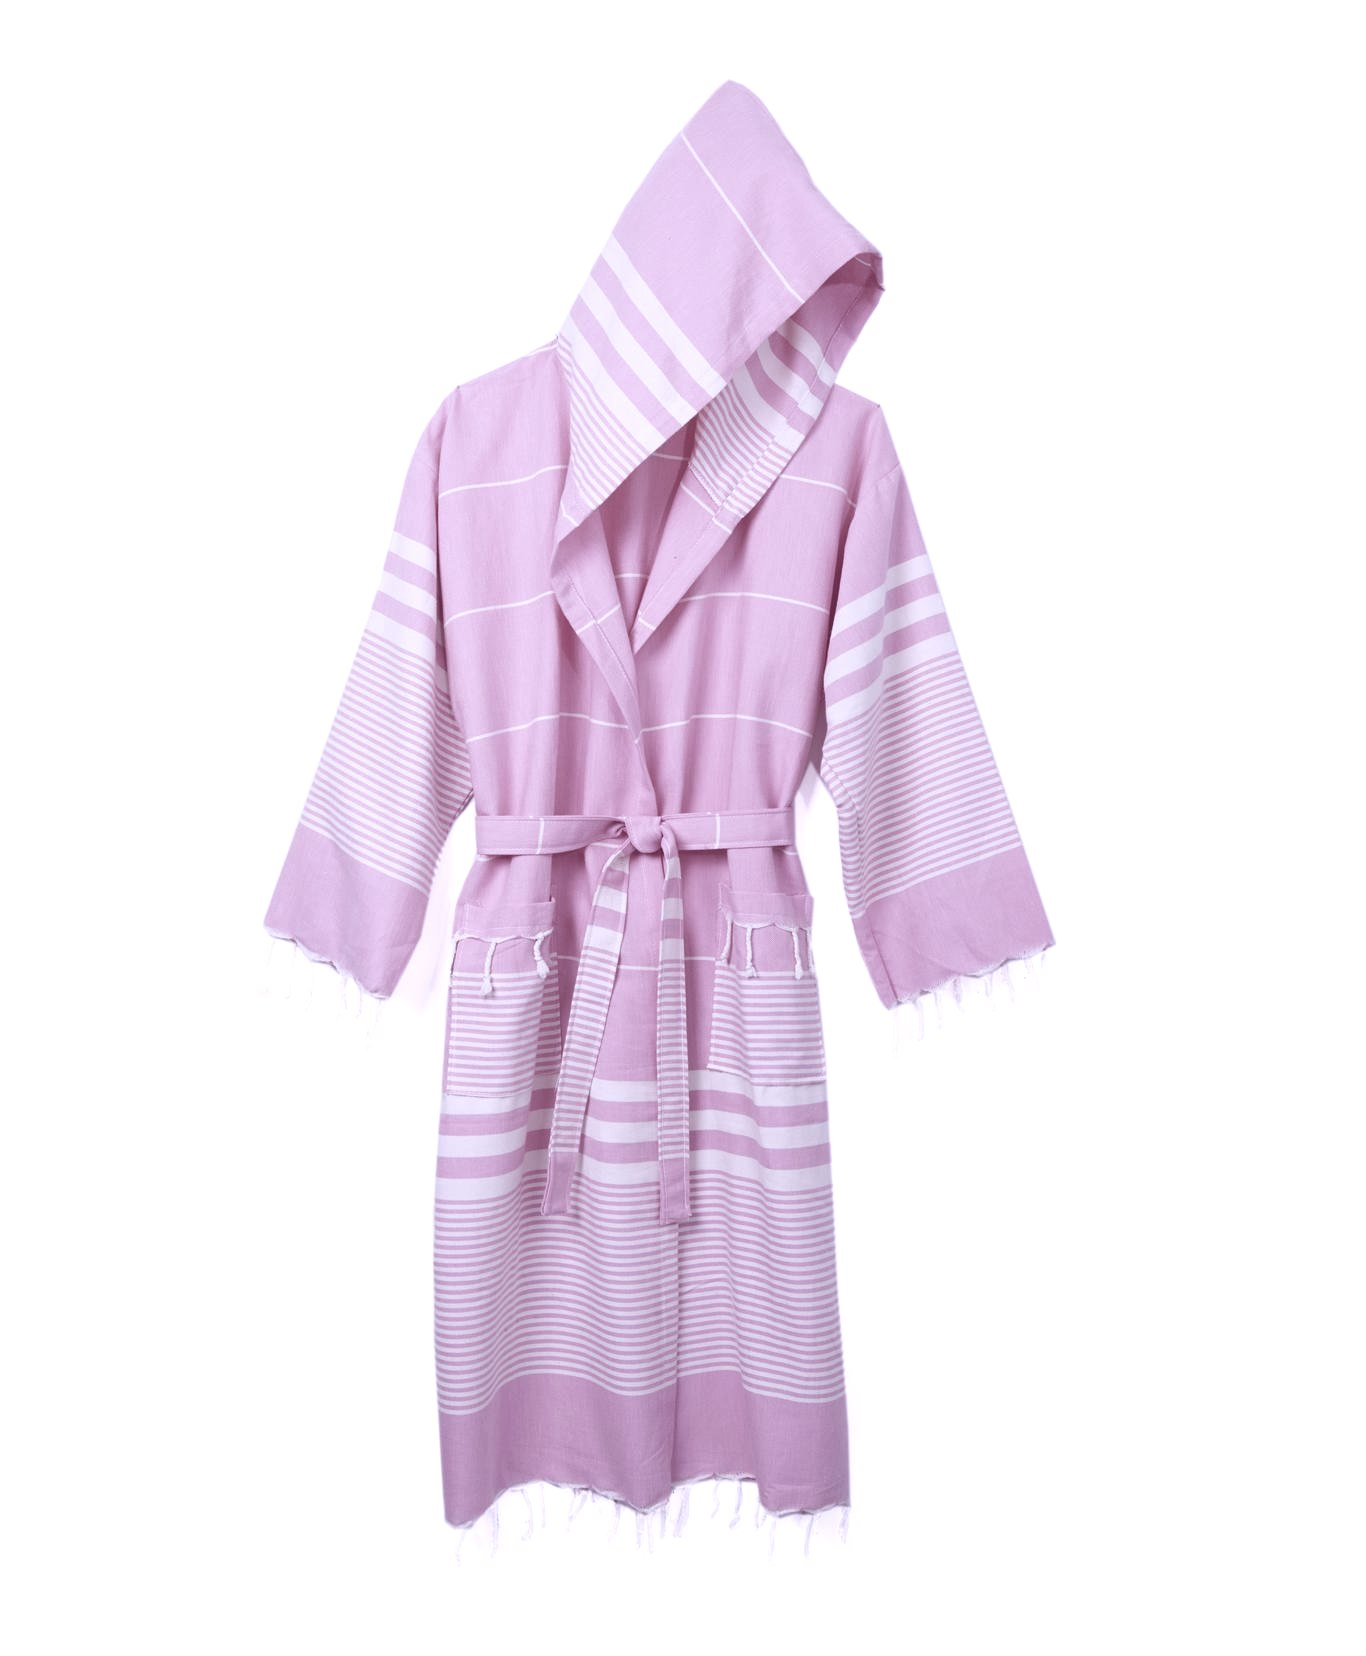 e638ab8055 Peshtemal Bathrobes for Men · Lightweight cotton bathrobe. Our super soft  ...